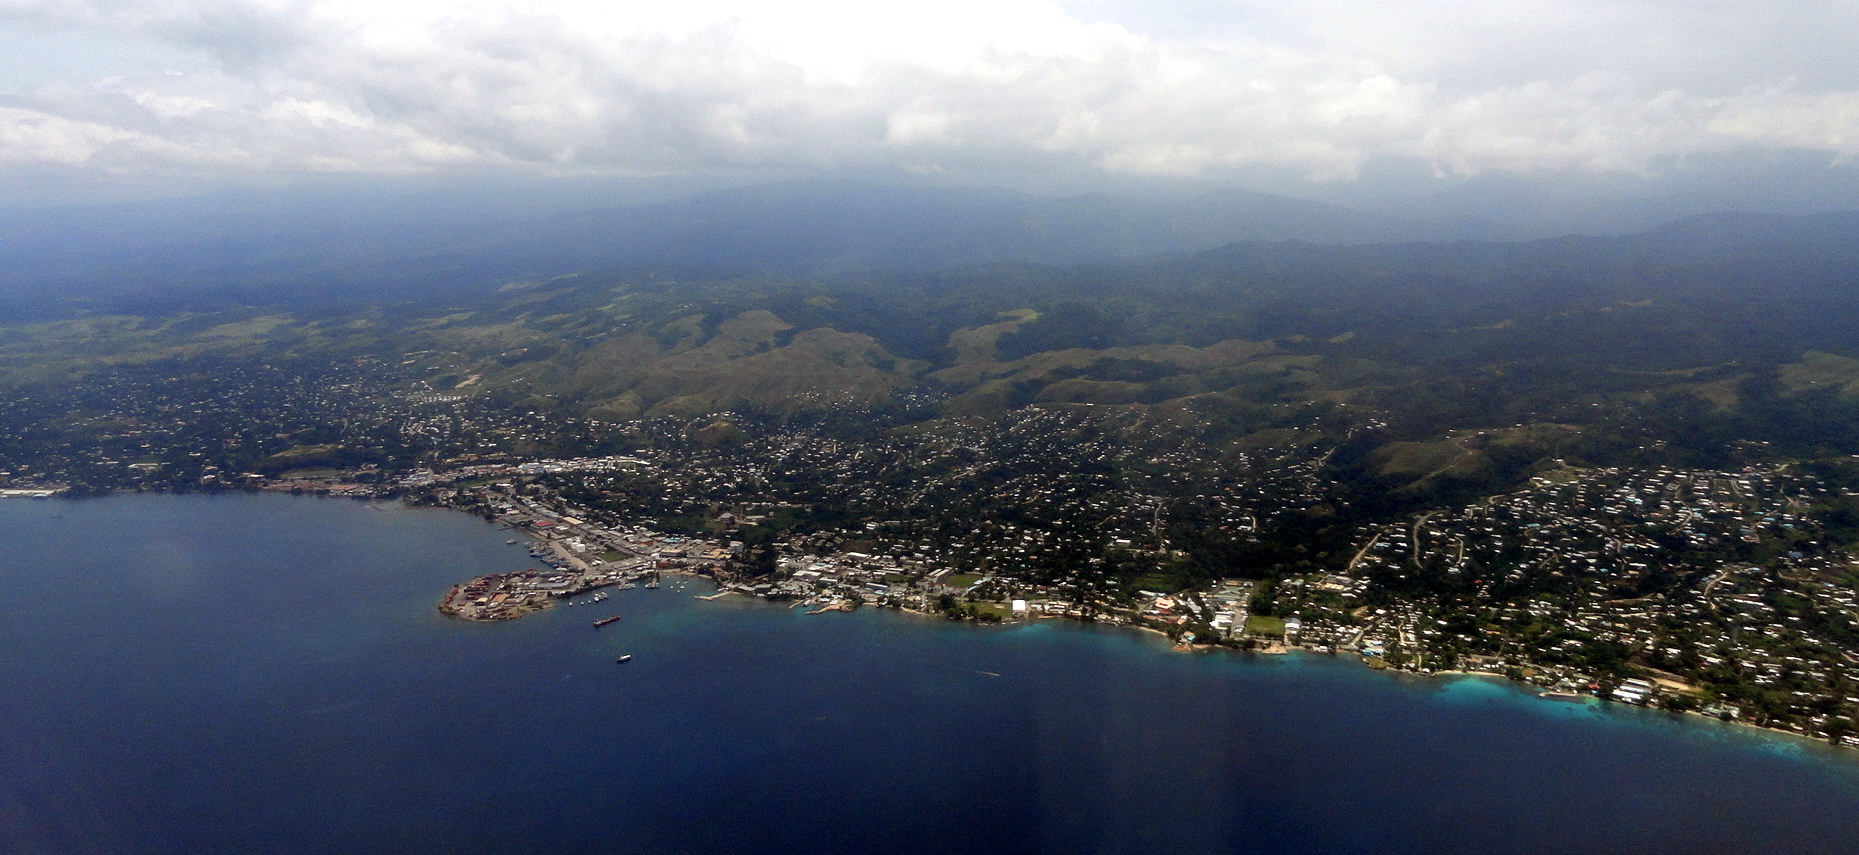 What Time Is It In Honiara Solomon Islands